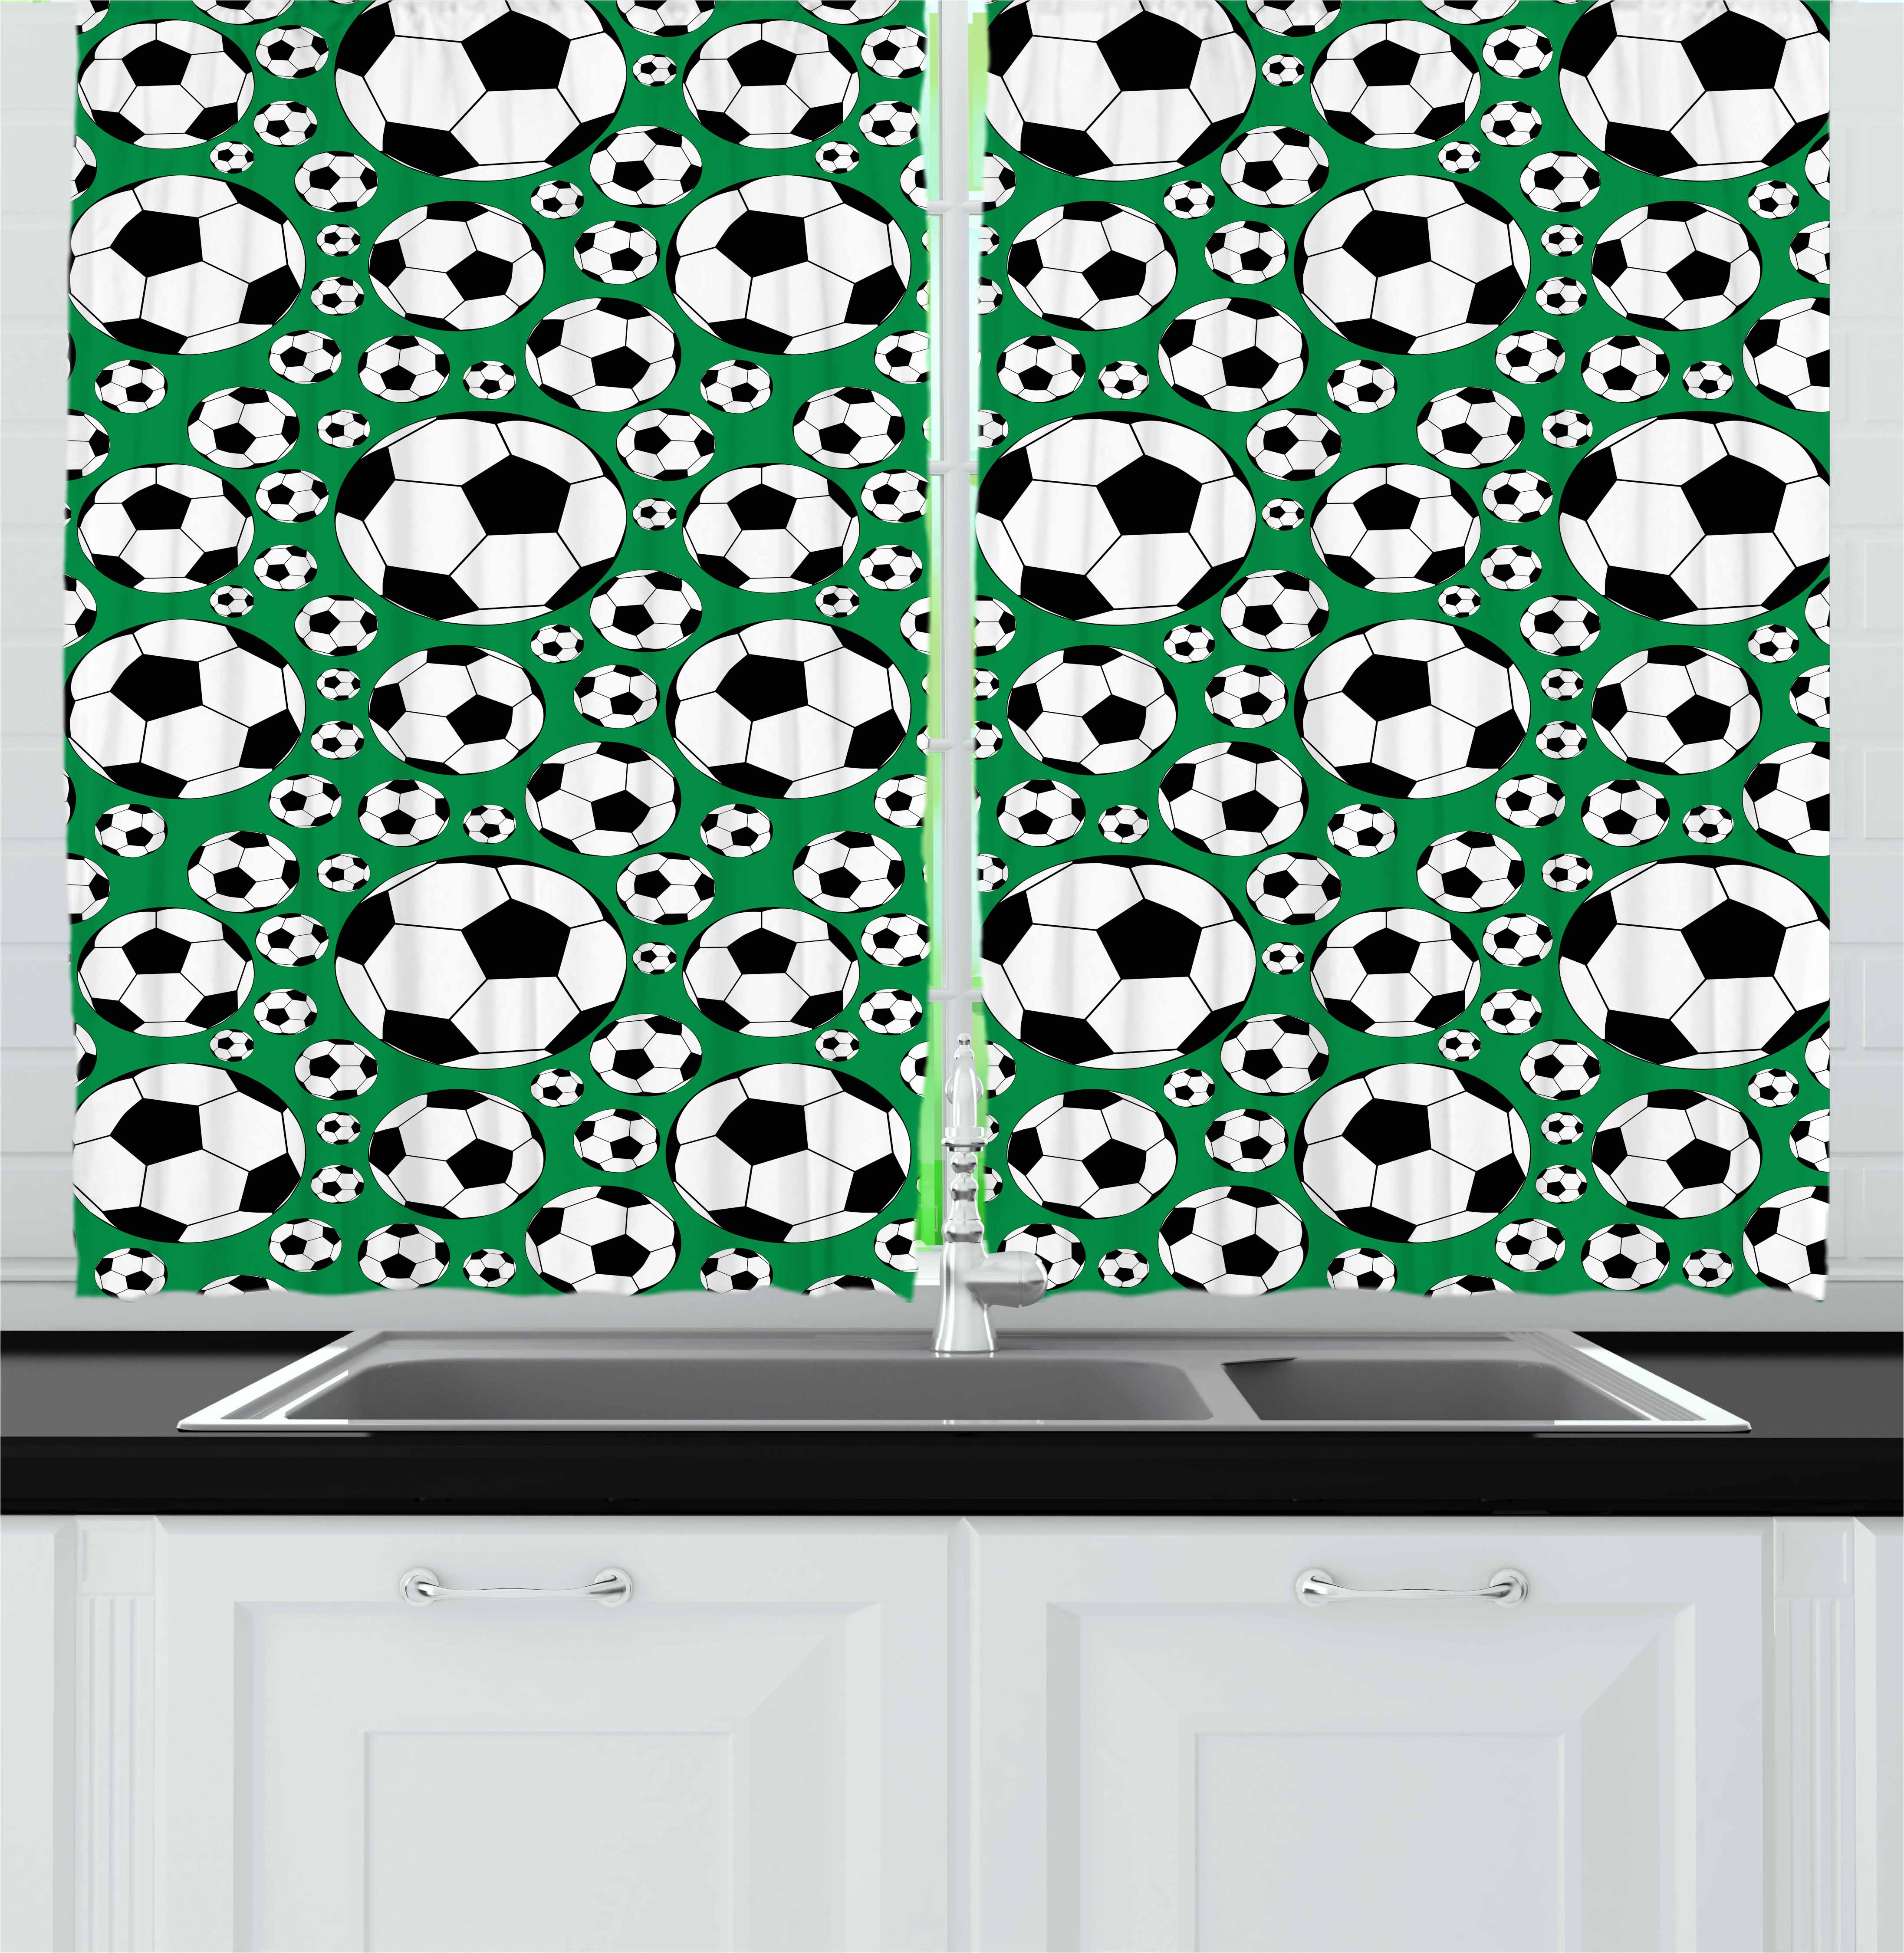 Soccer Curtains 2 Panels Set, Various Sizes Footballs Pattern Active Lifestyle Popular Sport from Europe, Window Drapes for Living Room Bedroom, 55W X 39L Inches, Green Black White, by Ambesonne kc_50840_55x39